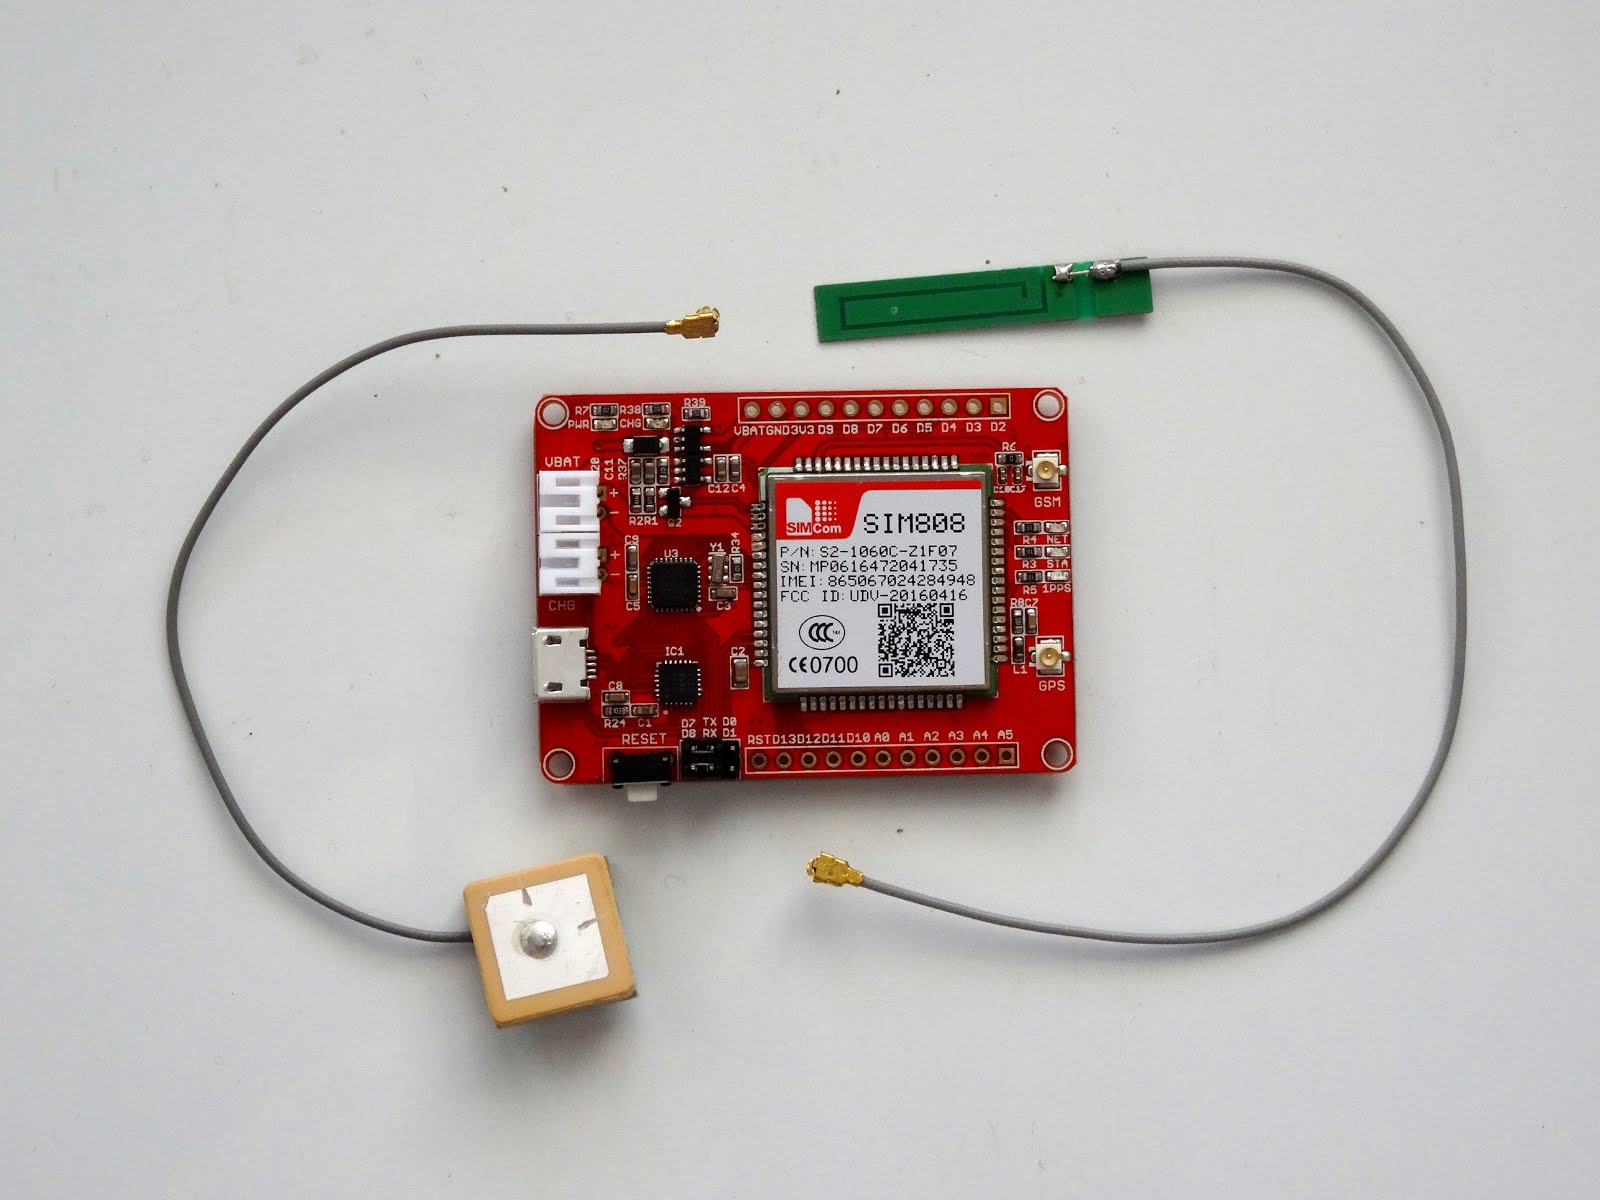 Mitov Software: Received 3 great GSM/GPRS/GPS IoT Maduino